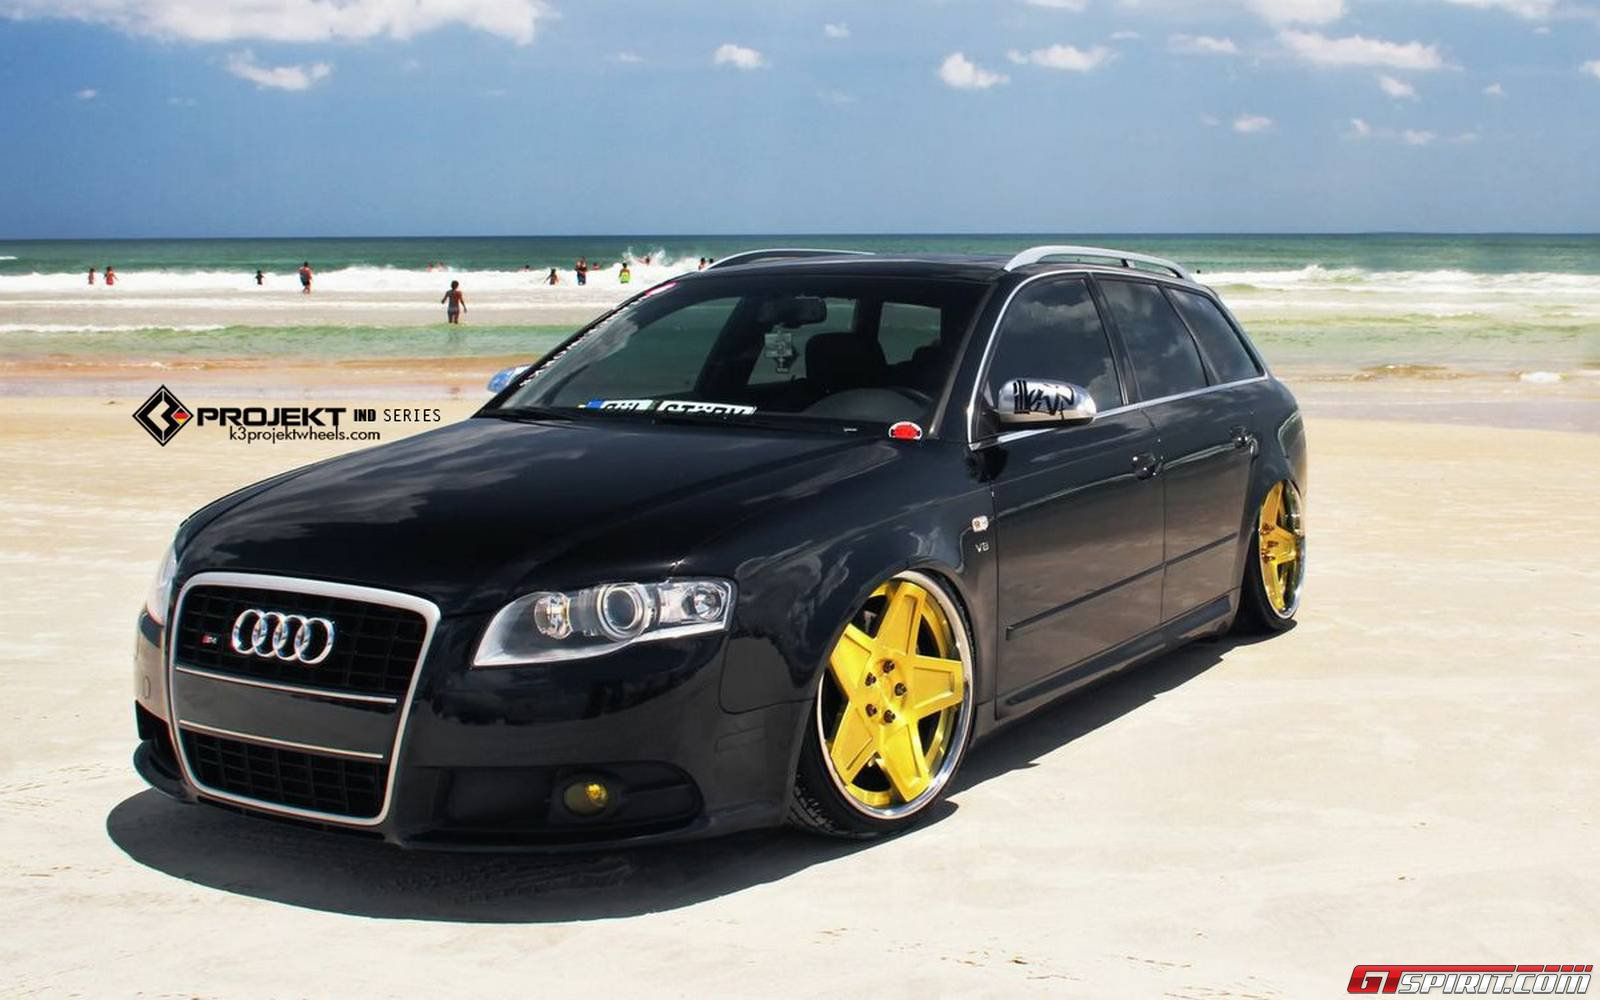 2006 audi s4 avant by k3 projekt. Black Bedroom Furniture Sets. Home Design Ideas